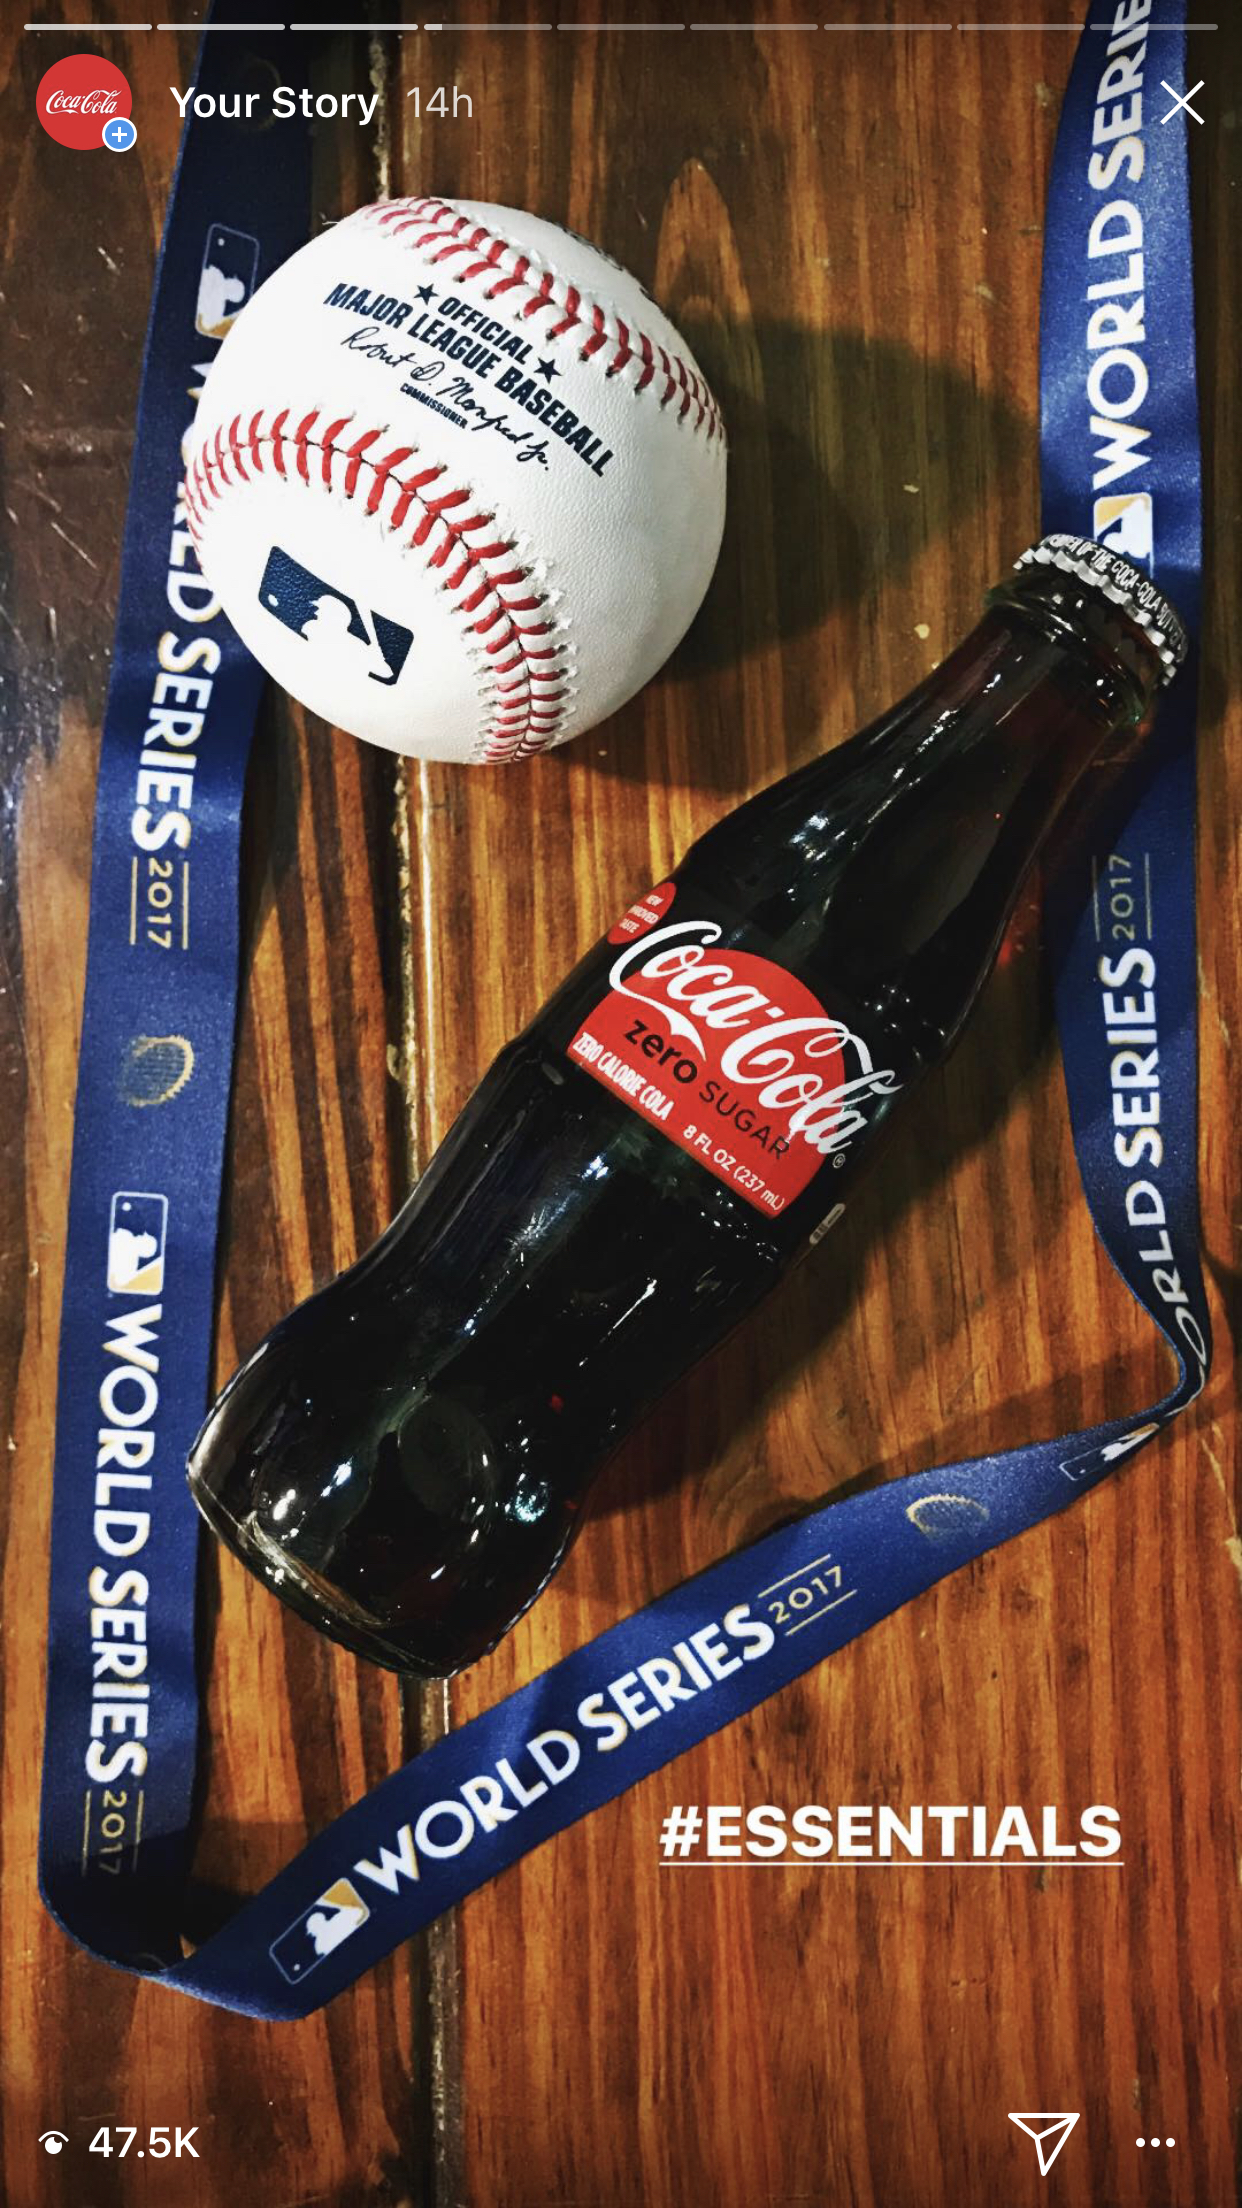 Coke_WorldSeries_2